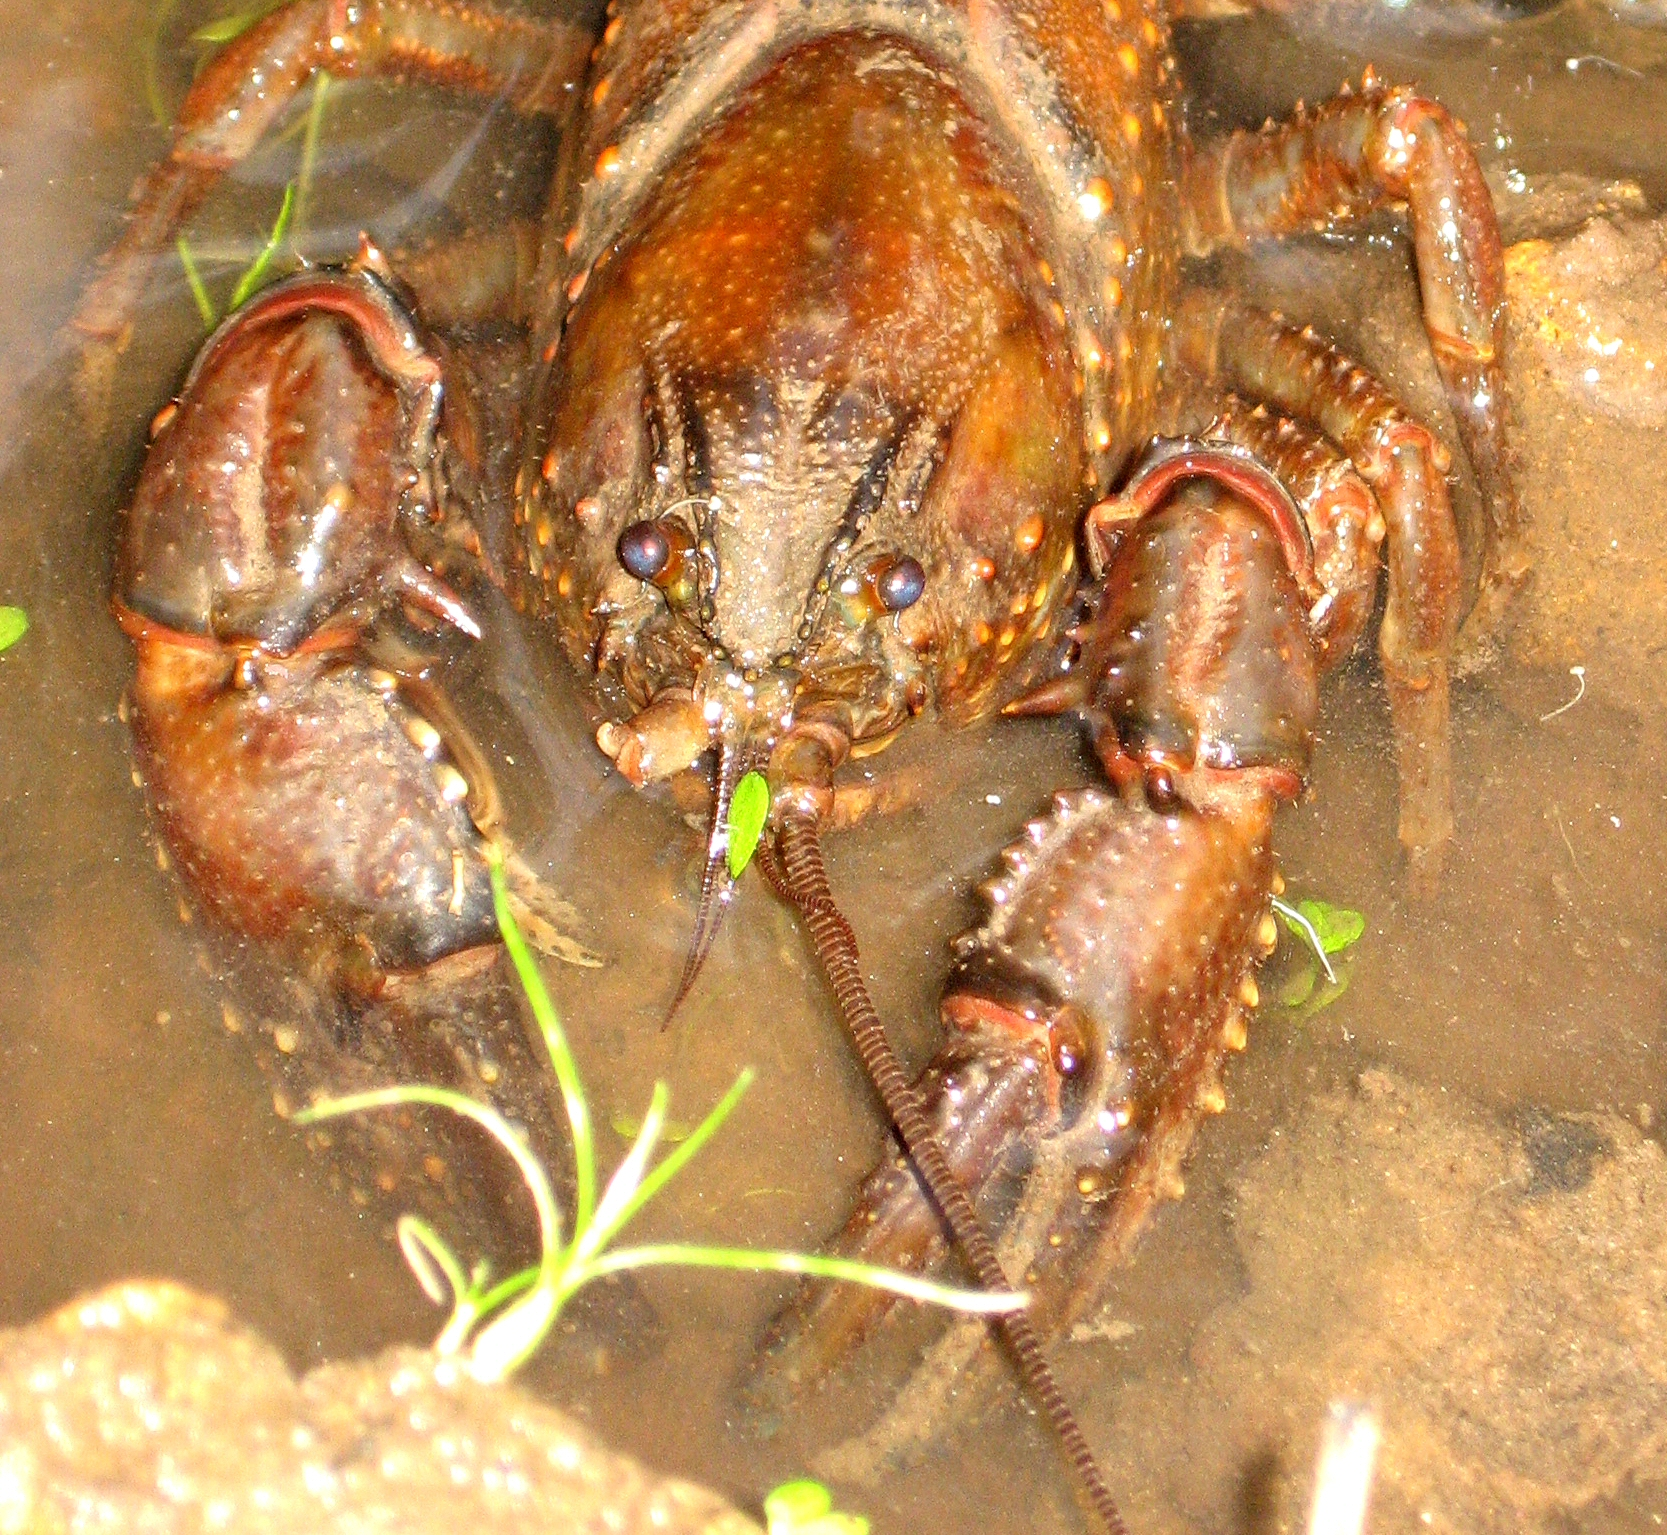 Burrowing crayfish at Huon Bush Retreats